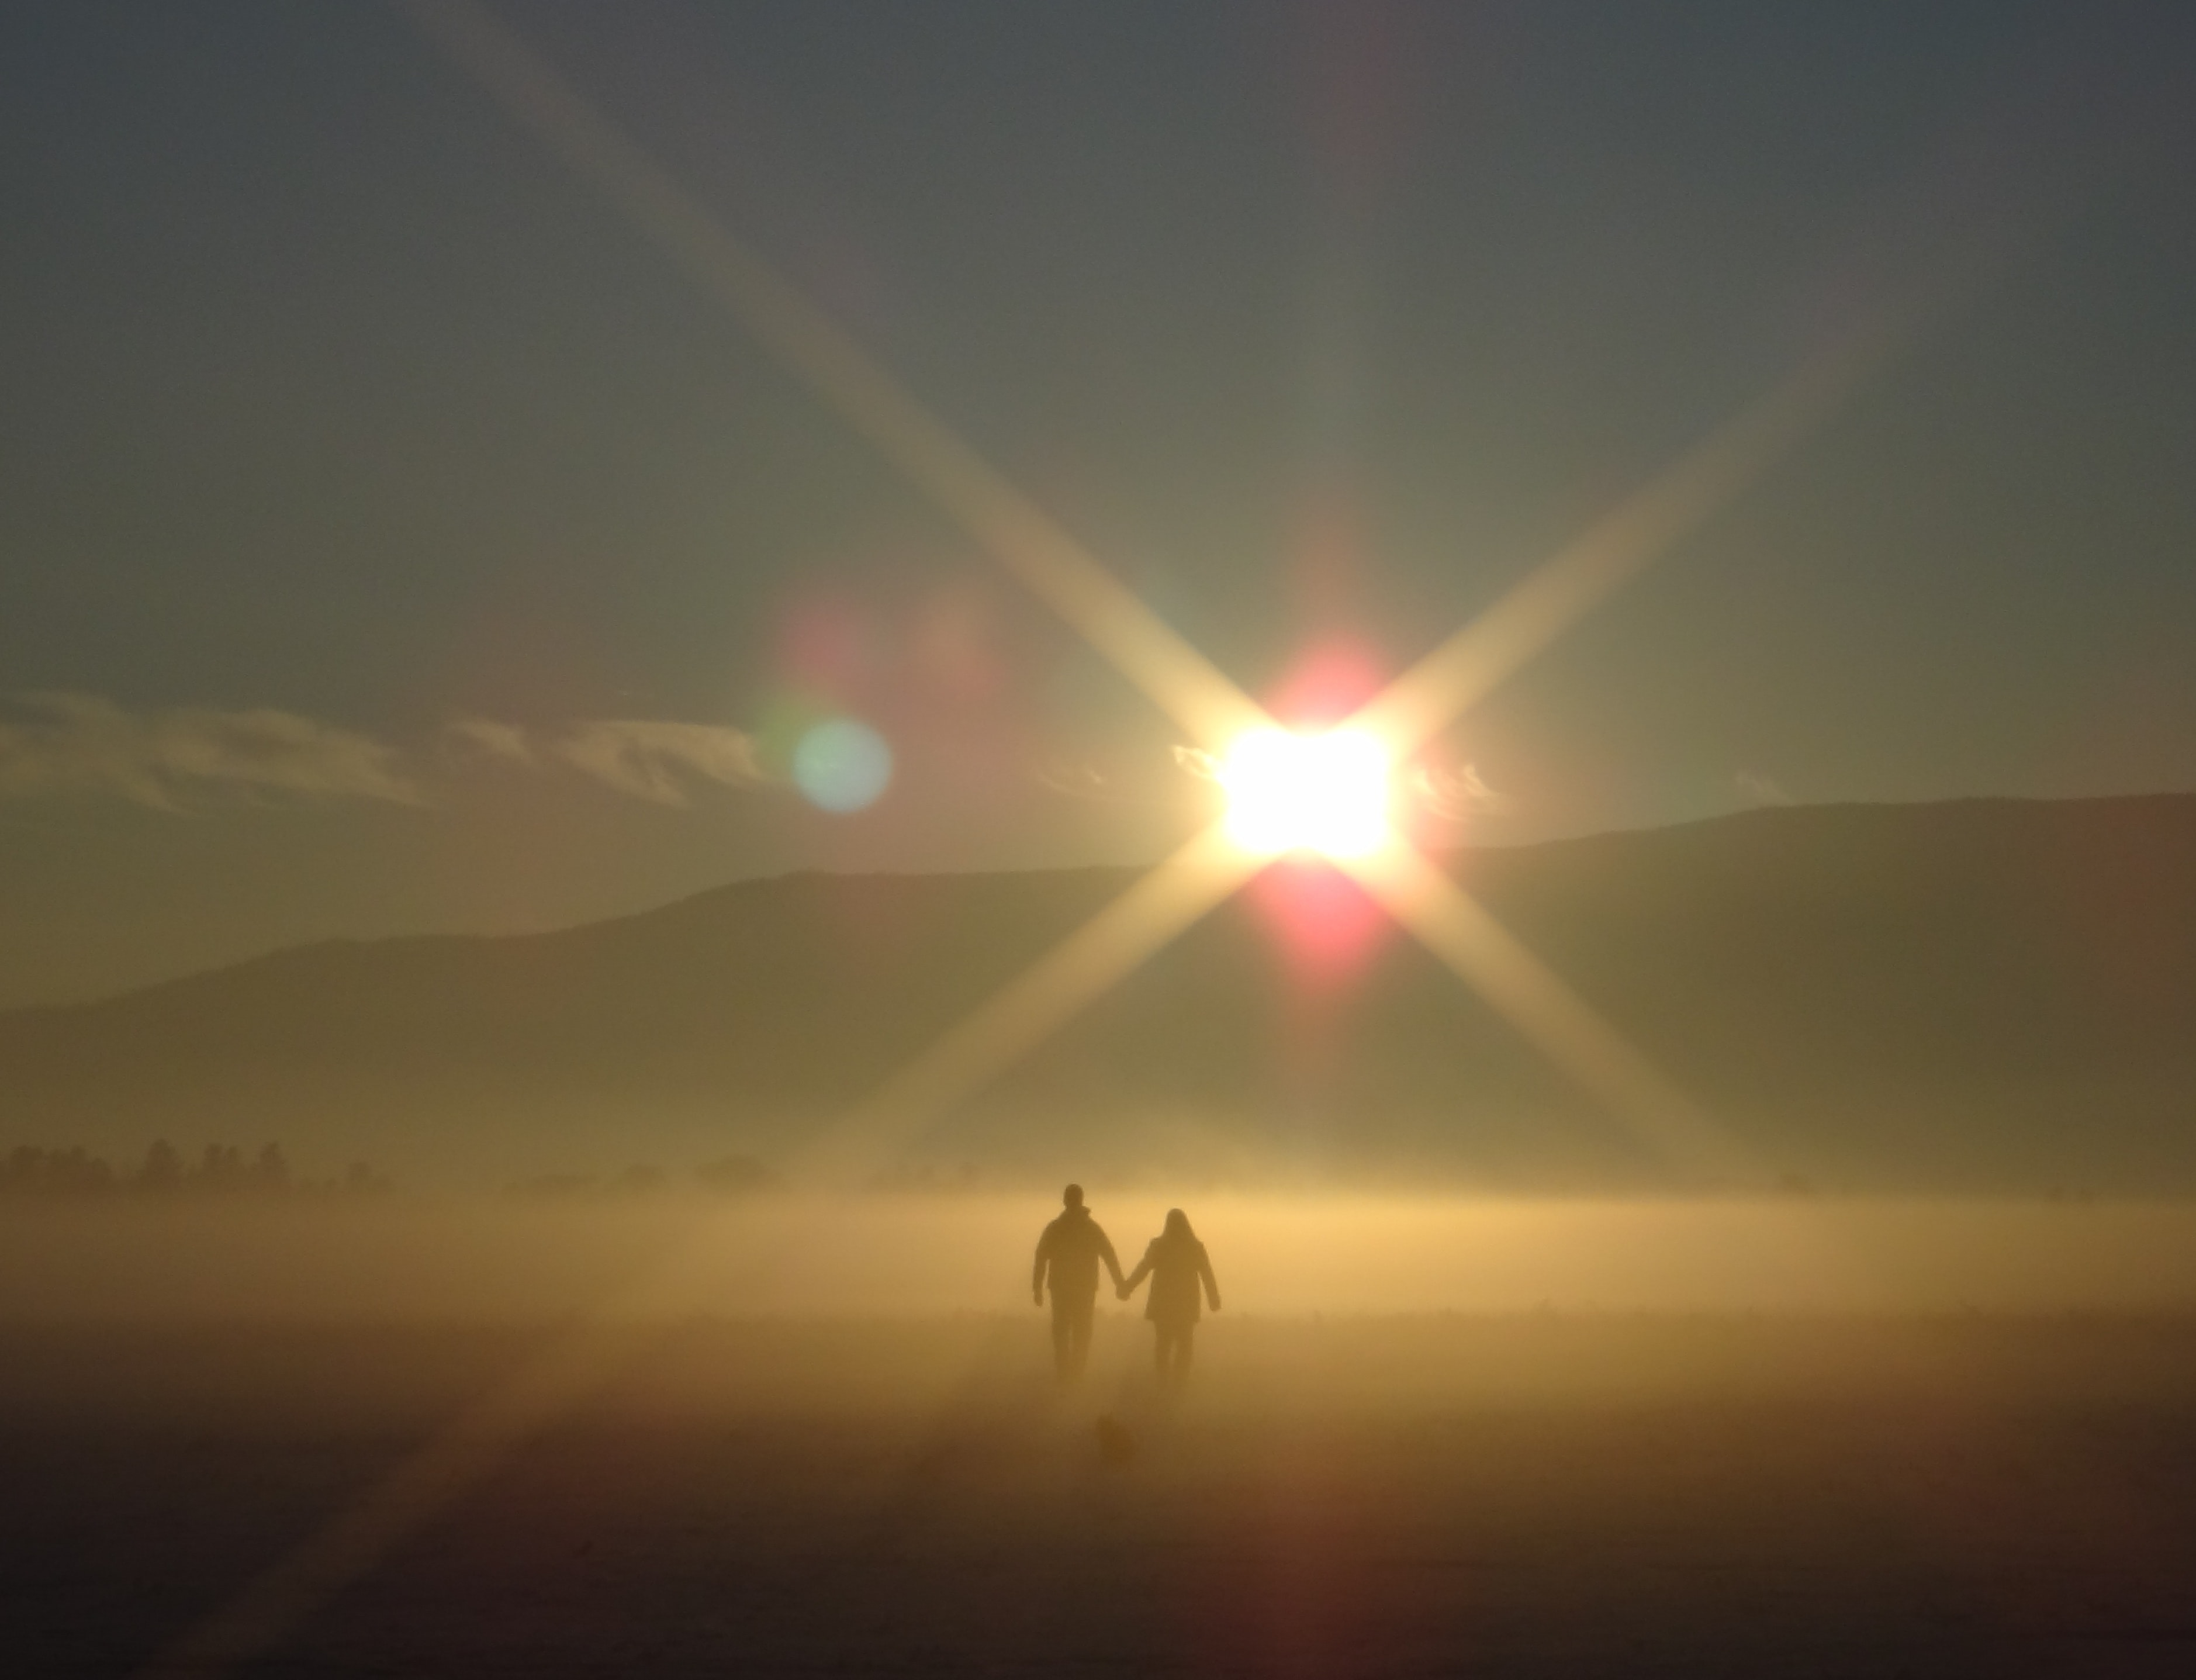 man and woman holding hands walking through the mountain